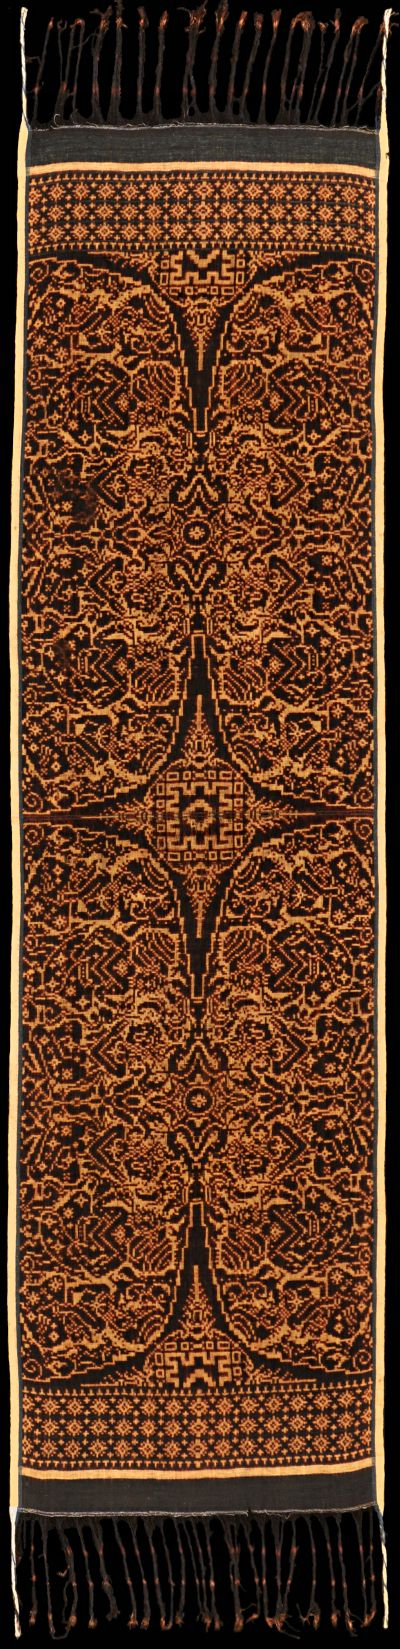 Ikat from Tenganan, Bali Group, Indonesia. Geringsing wayang kebo. Field divided into semicircles by four-pointed stars. In the semicircles are two groups of three people, probably representing an audience between a priest, his wife and a devotee. The borders consist of three rows of star flowers. Black on ecru. Cloth has a warm undertone, probably due to a bath of ayar kuning.